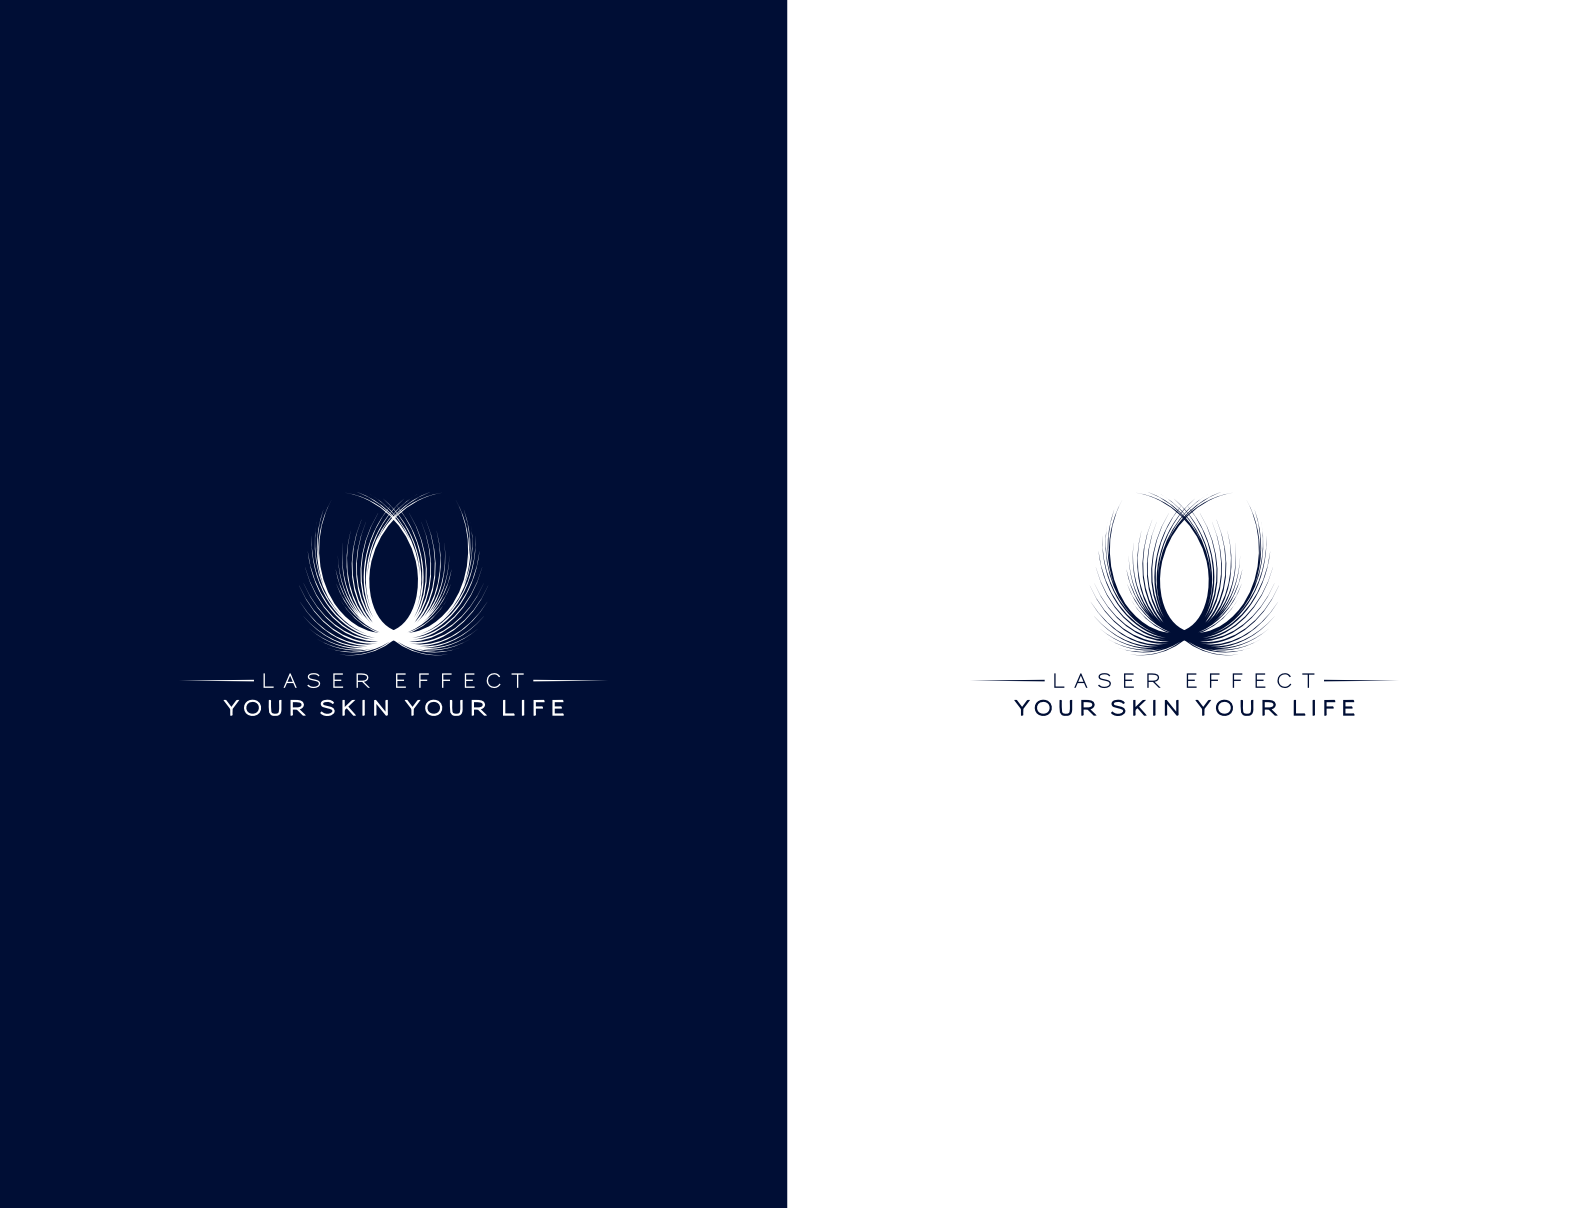 Design a logo that conveys strength but also has warmth and softness.